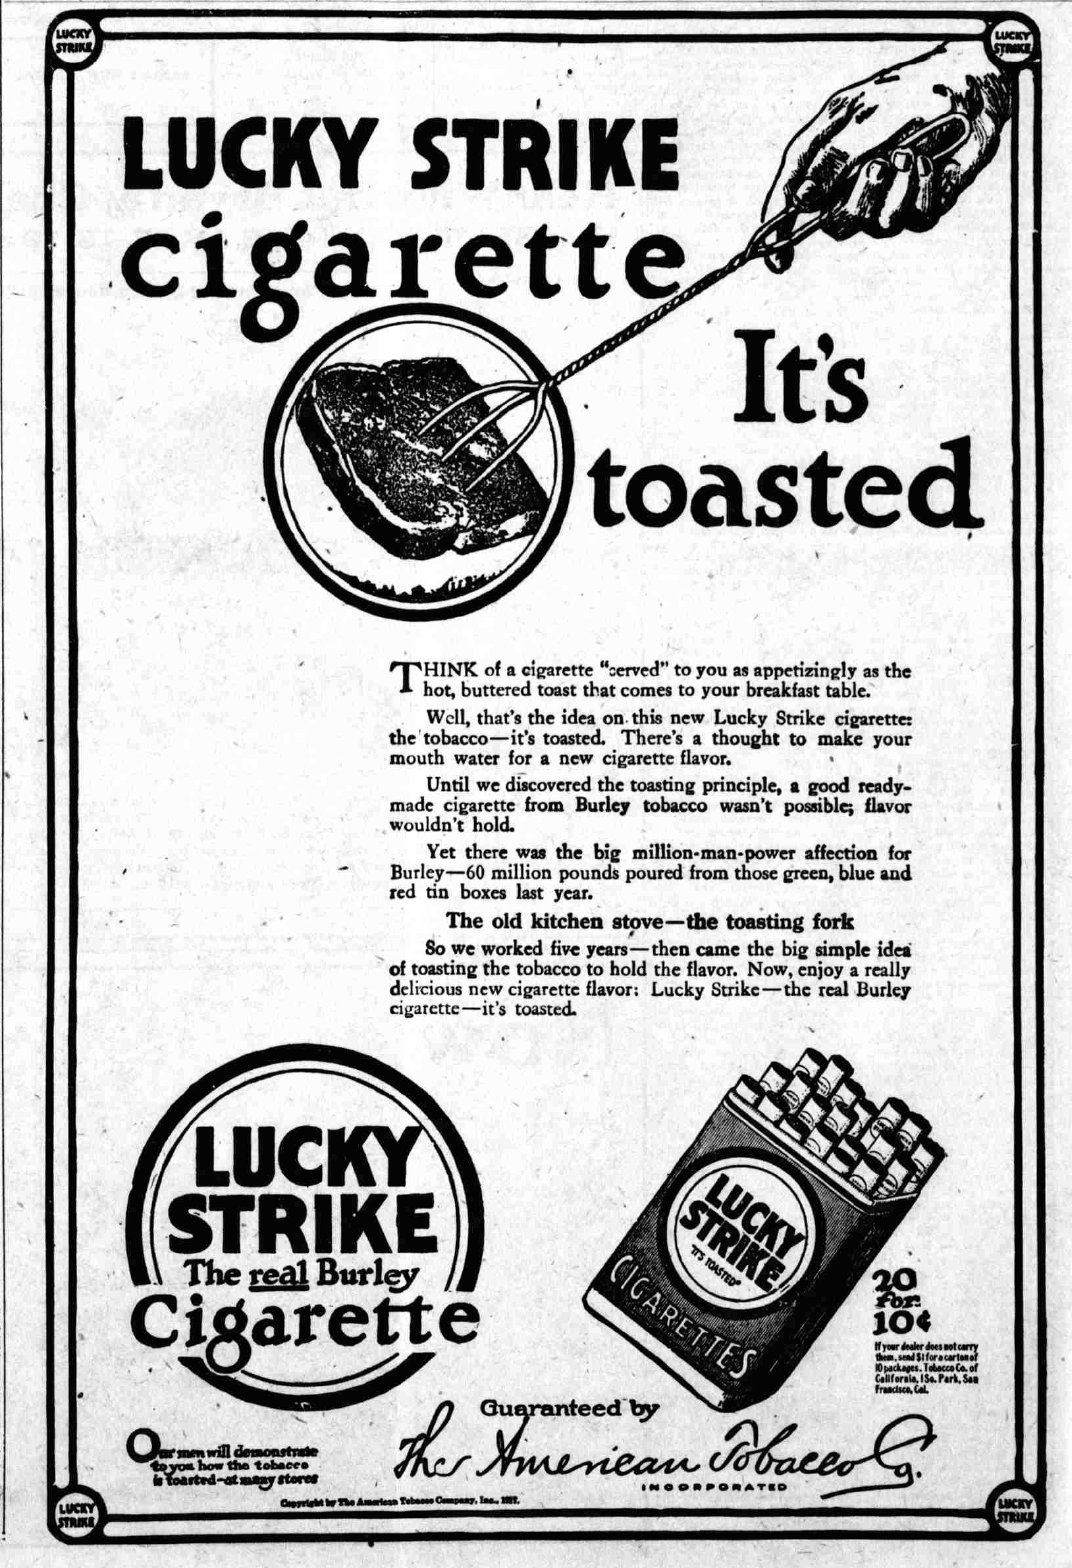 Lucky strike it's toasted.jpg